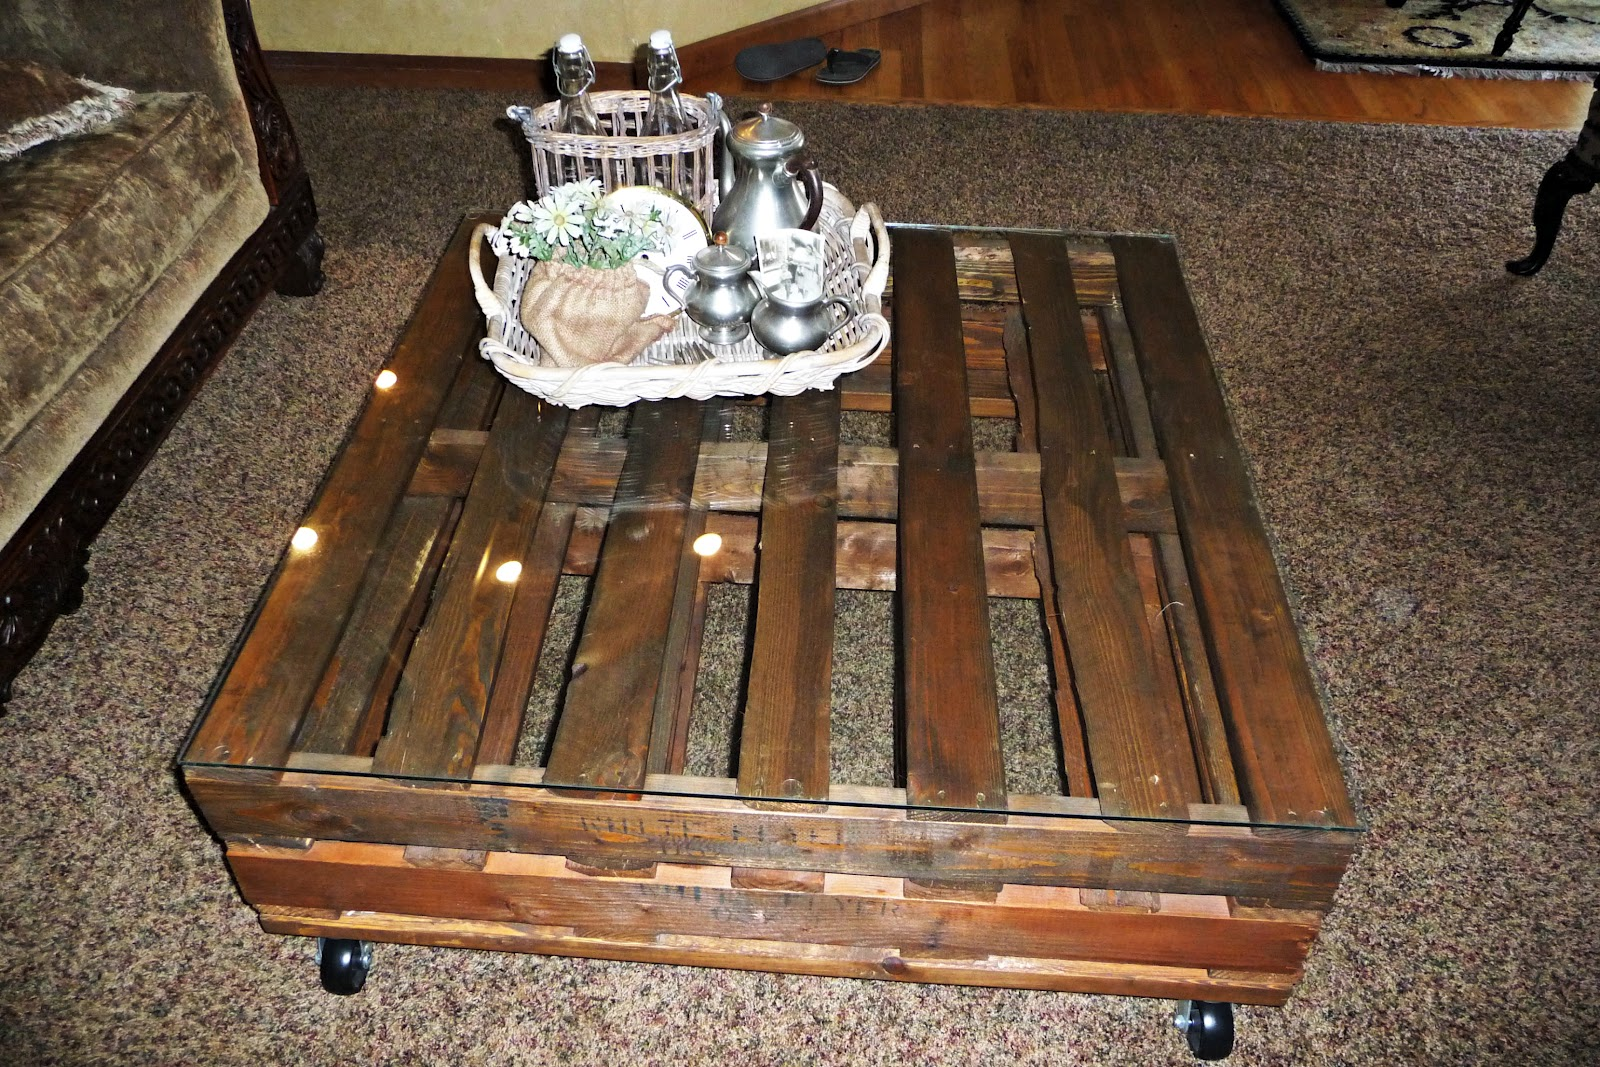 Creative Juices for Decor: DIY Pallet Coffee Table Adds Character ...